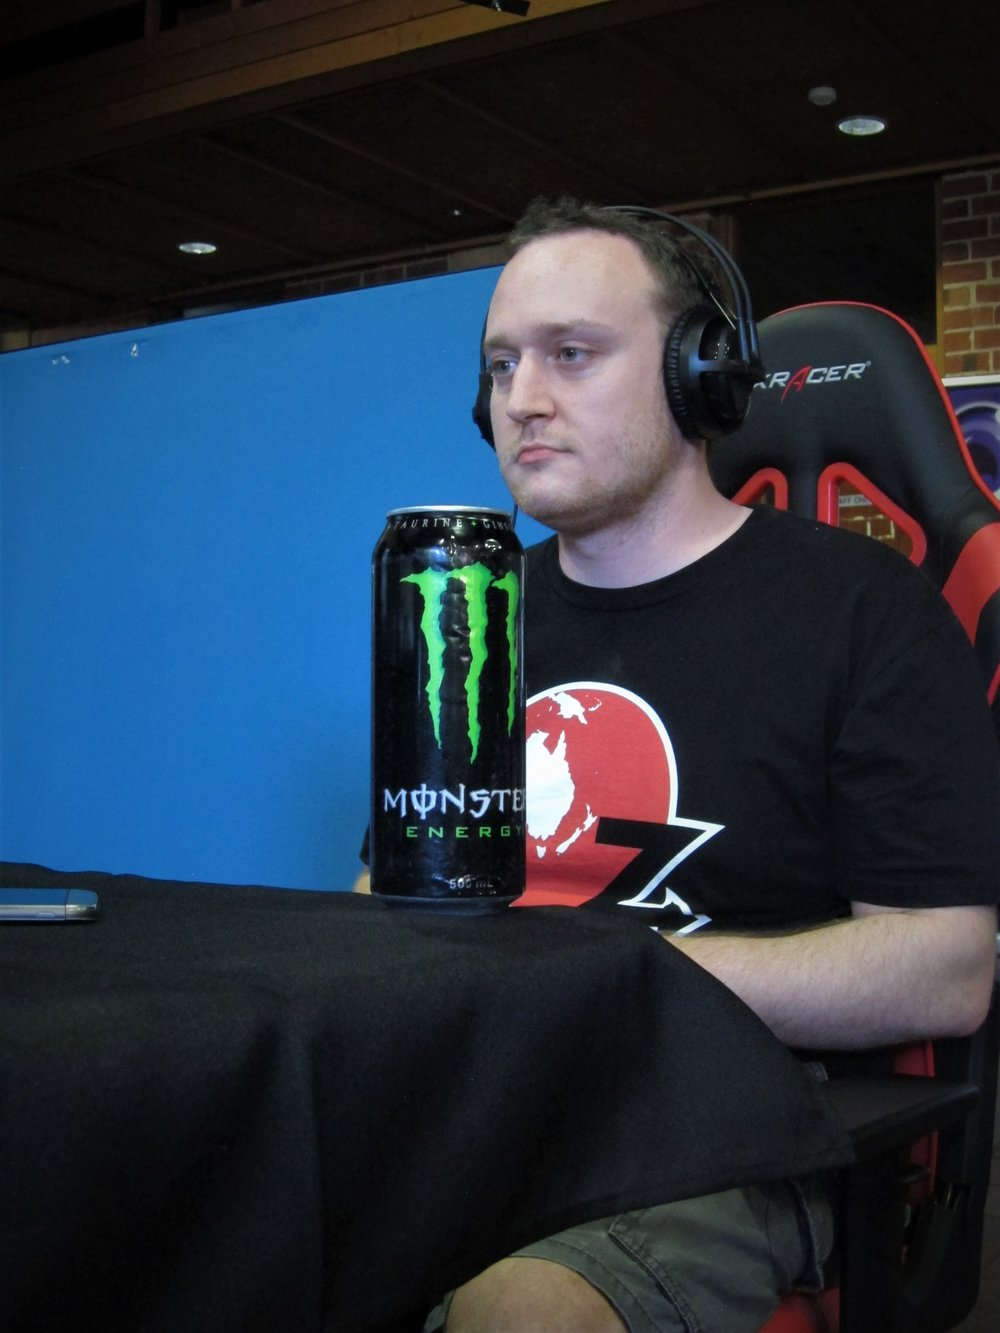 Bug hits the stream with an energy drink.